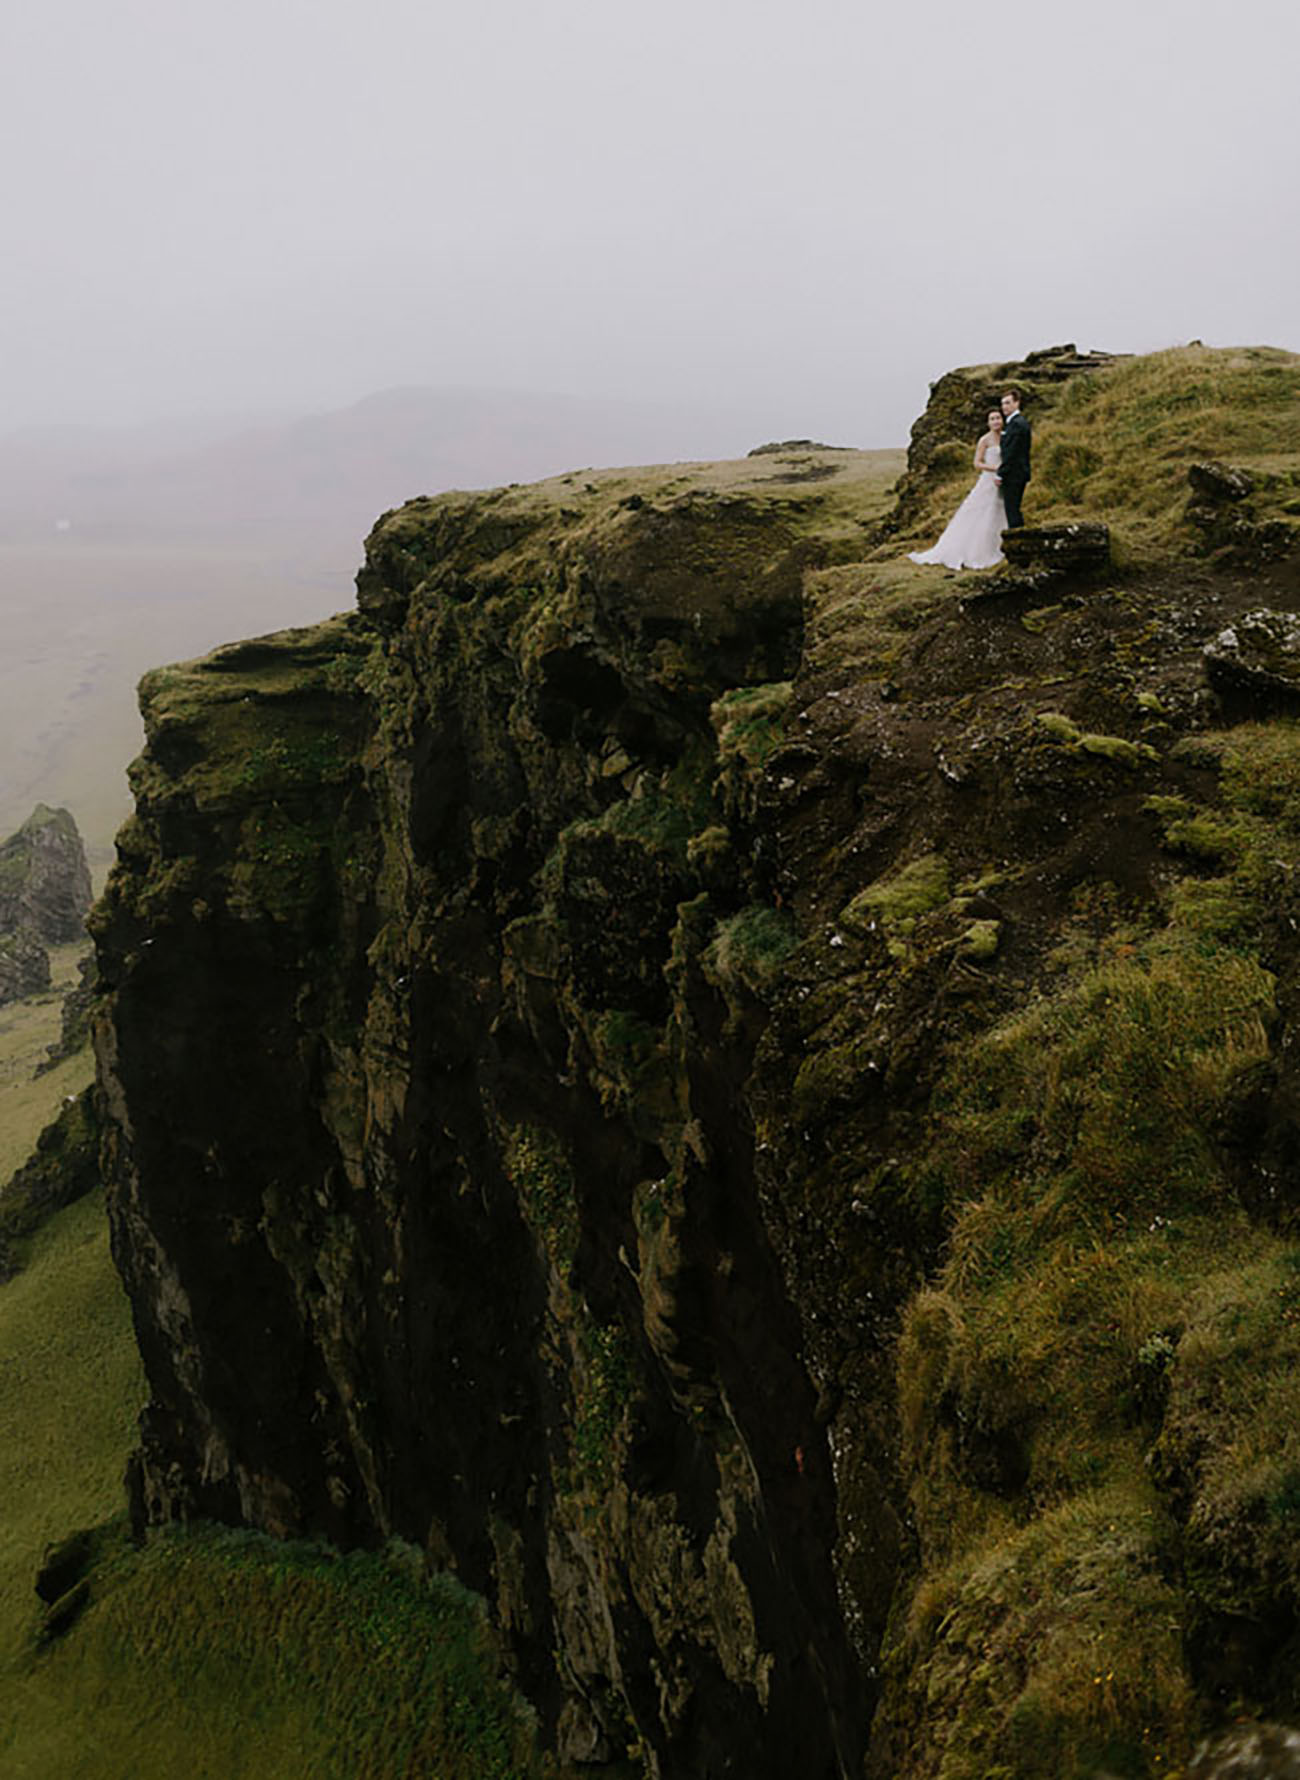 Iceland seems to be high on everyone's list for a visit, so why not elope there and plan time to explore its natural beauty